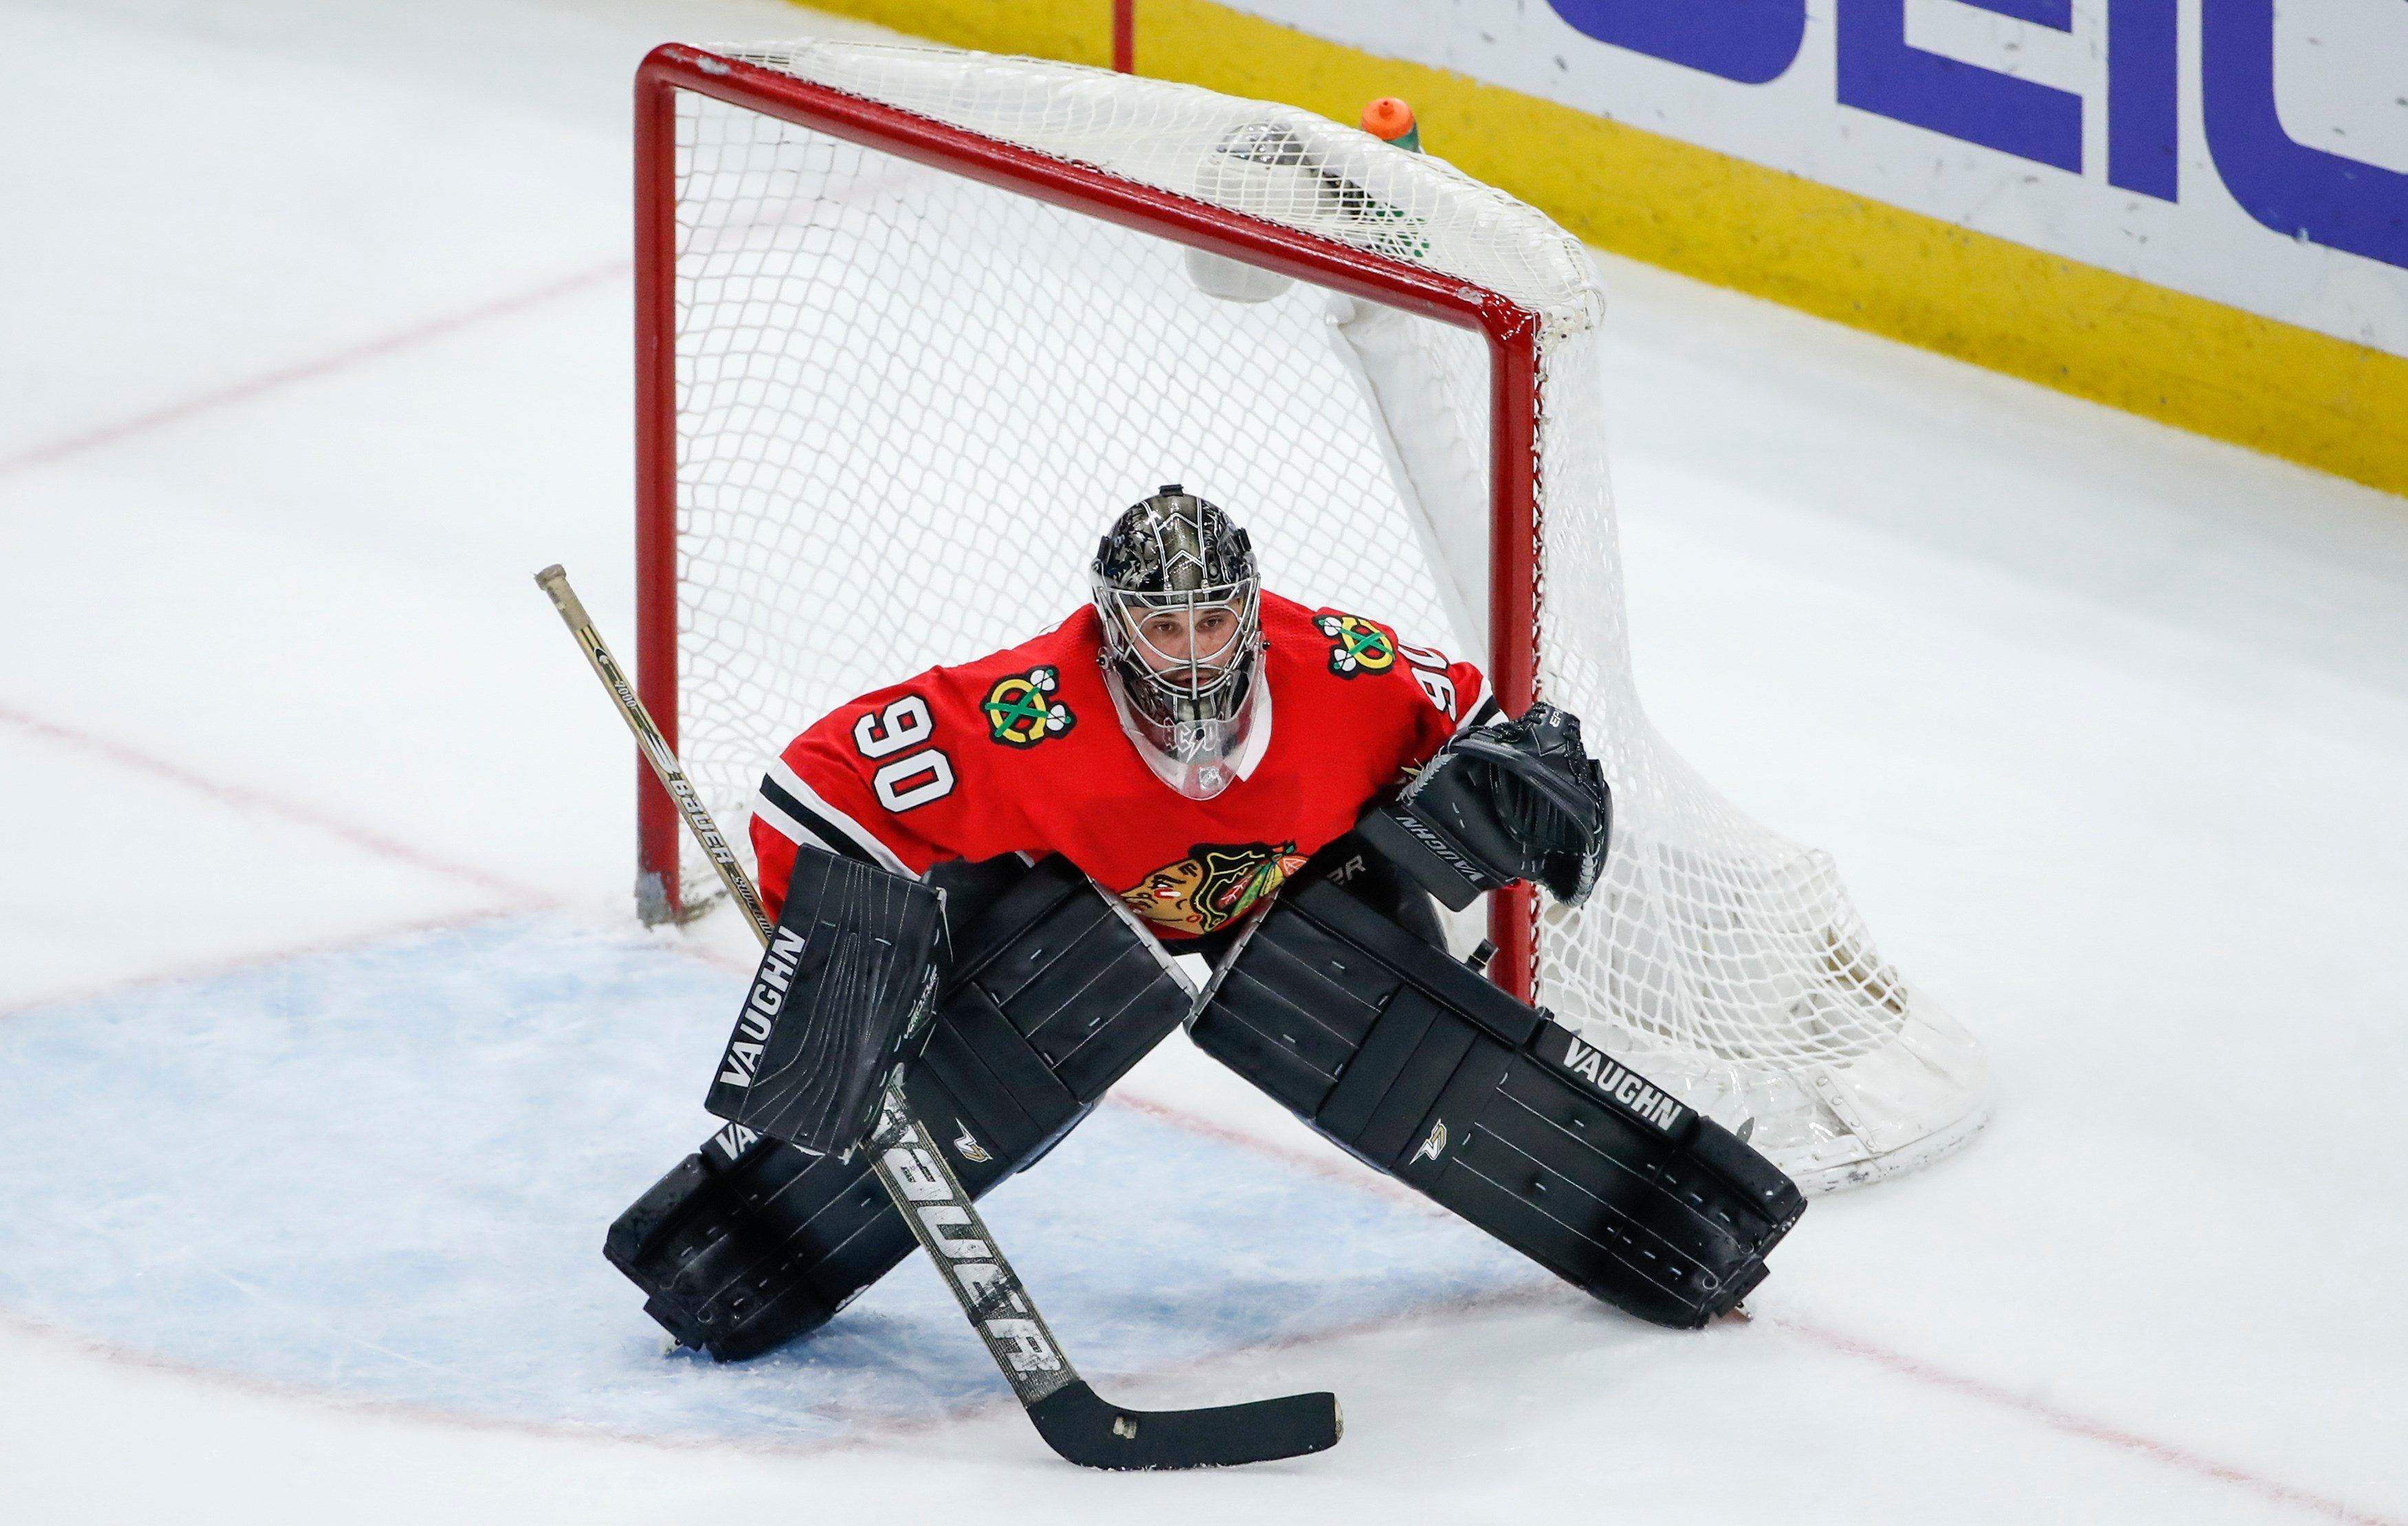 Chicago Blackhawks goalie Scott Foster defends against the Winnipeg Jets during the third period of an NHL hockey game Thursday, March 29, 2018, in Chicago. (AP Photo/Kamil Krzaczynski)